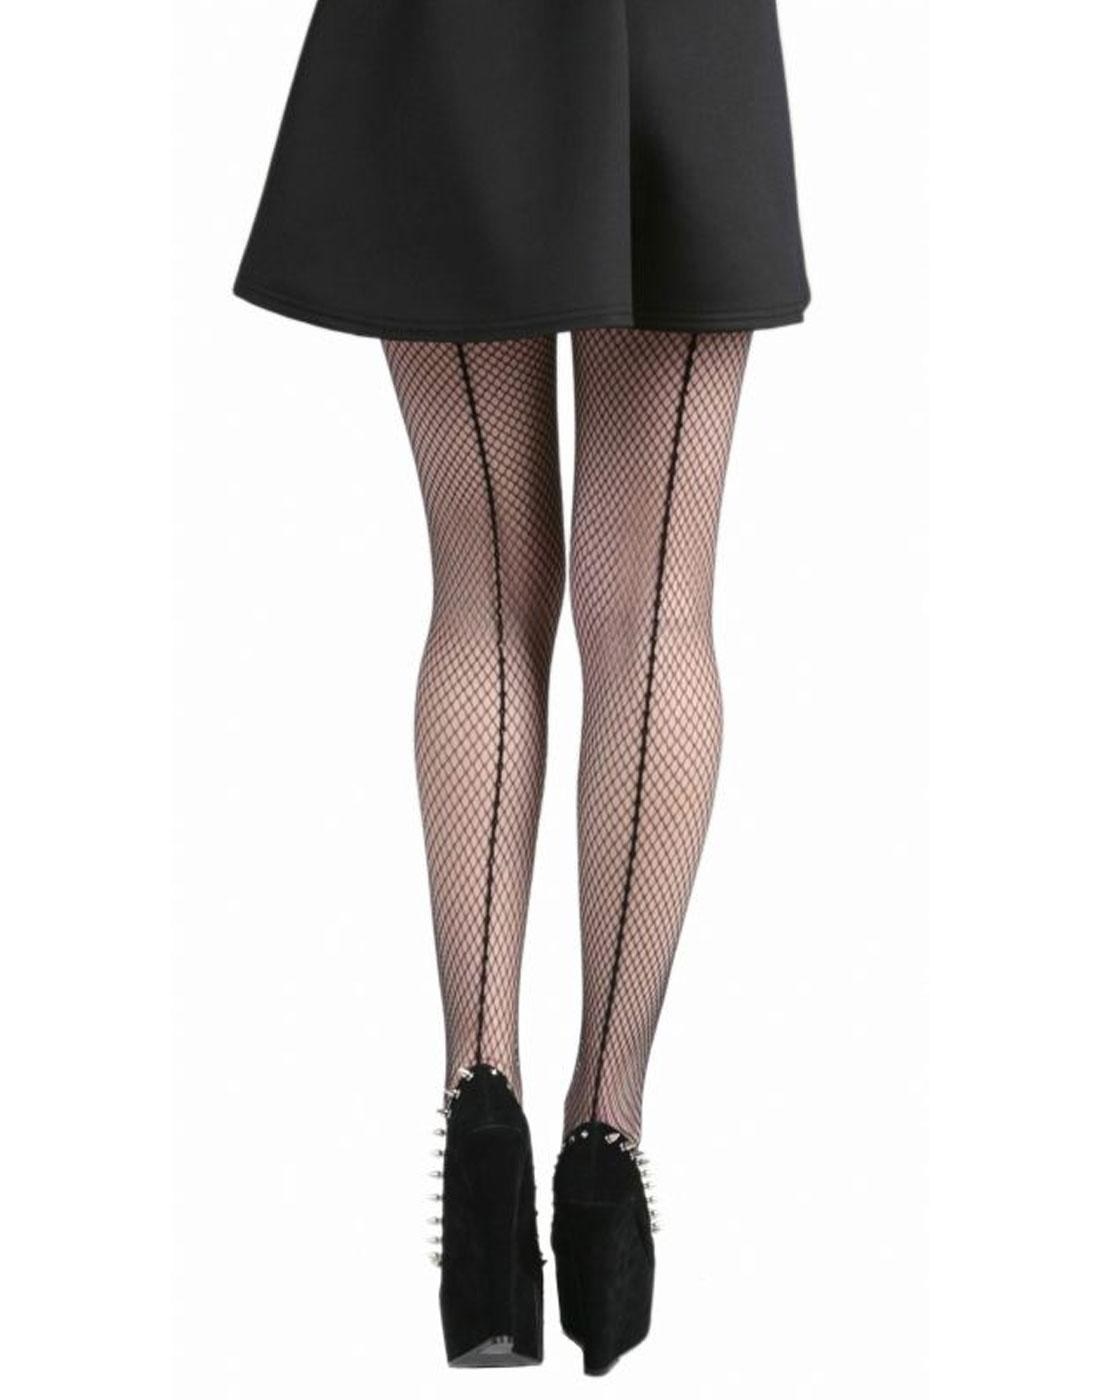 + PAMELA MANN Fishnet Tights with Seam in Black